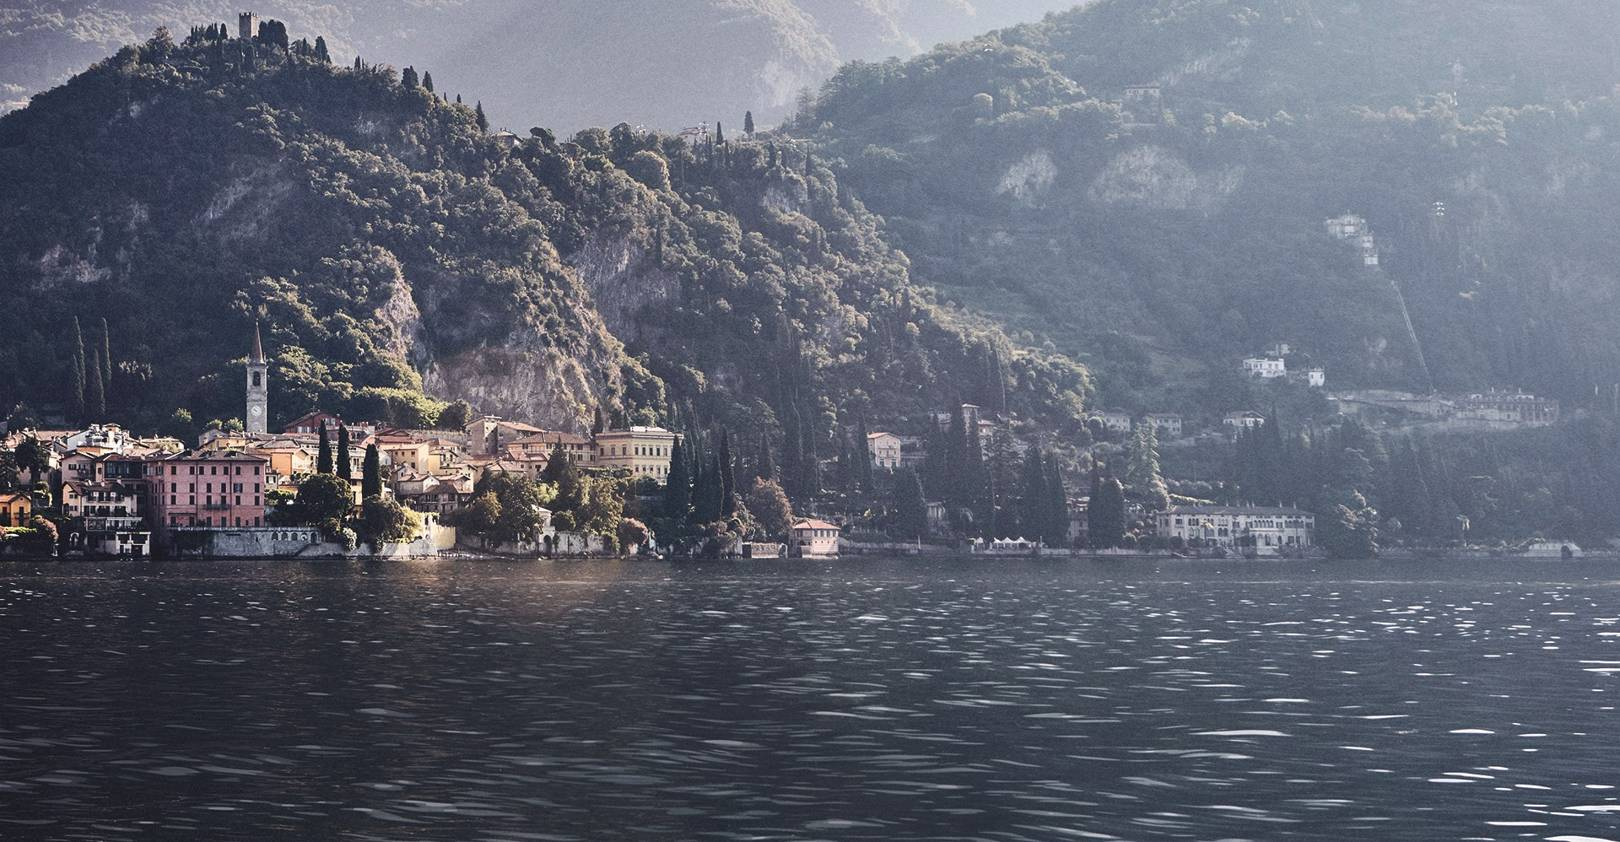 Lake Como: Italy's greatest lake